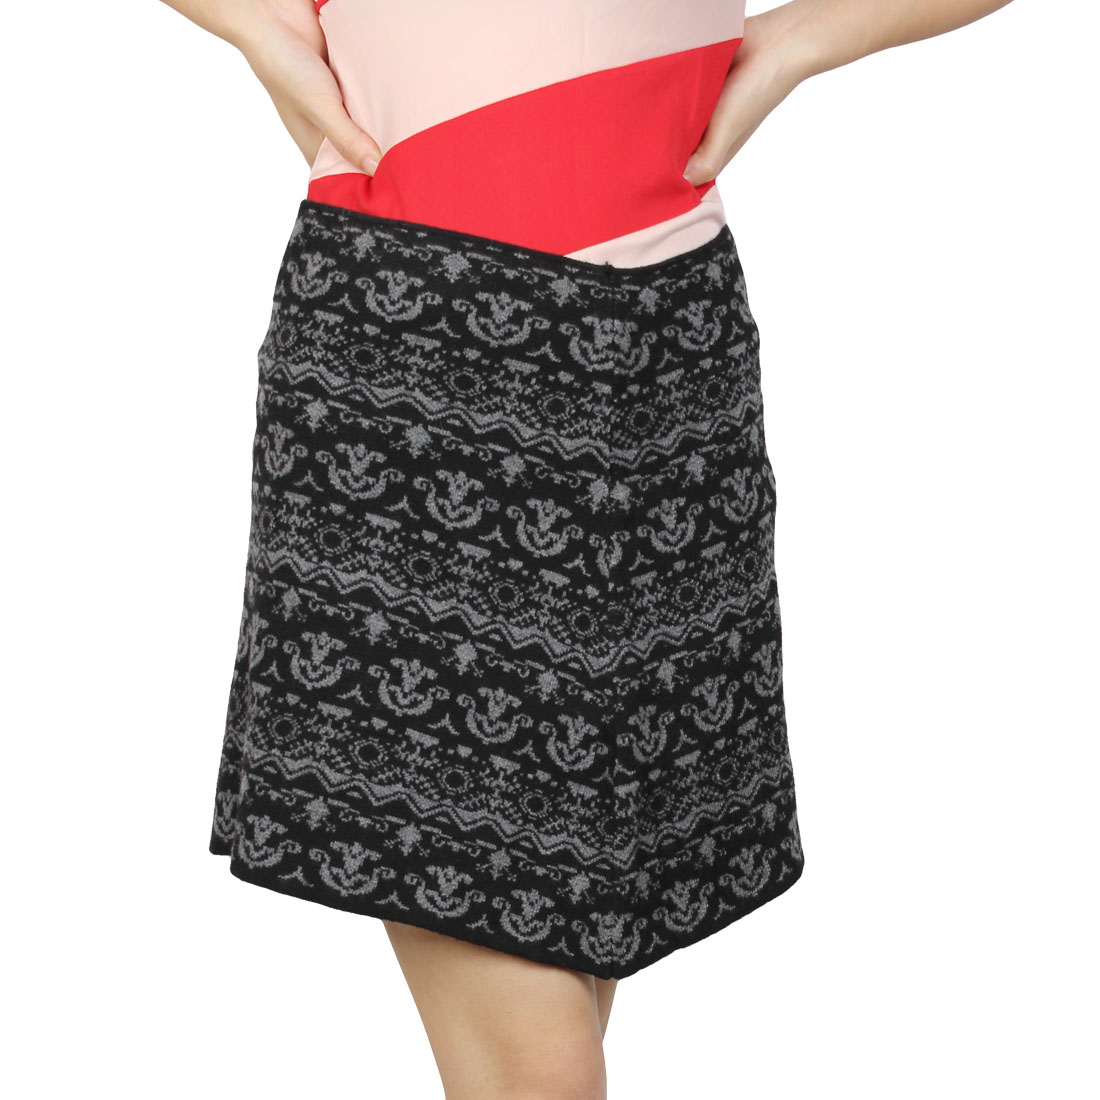 Ladies Textured Gray Jacquard Pattern Black Elastic Knitting Mini Skirt XS